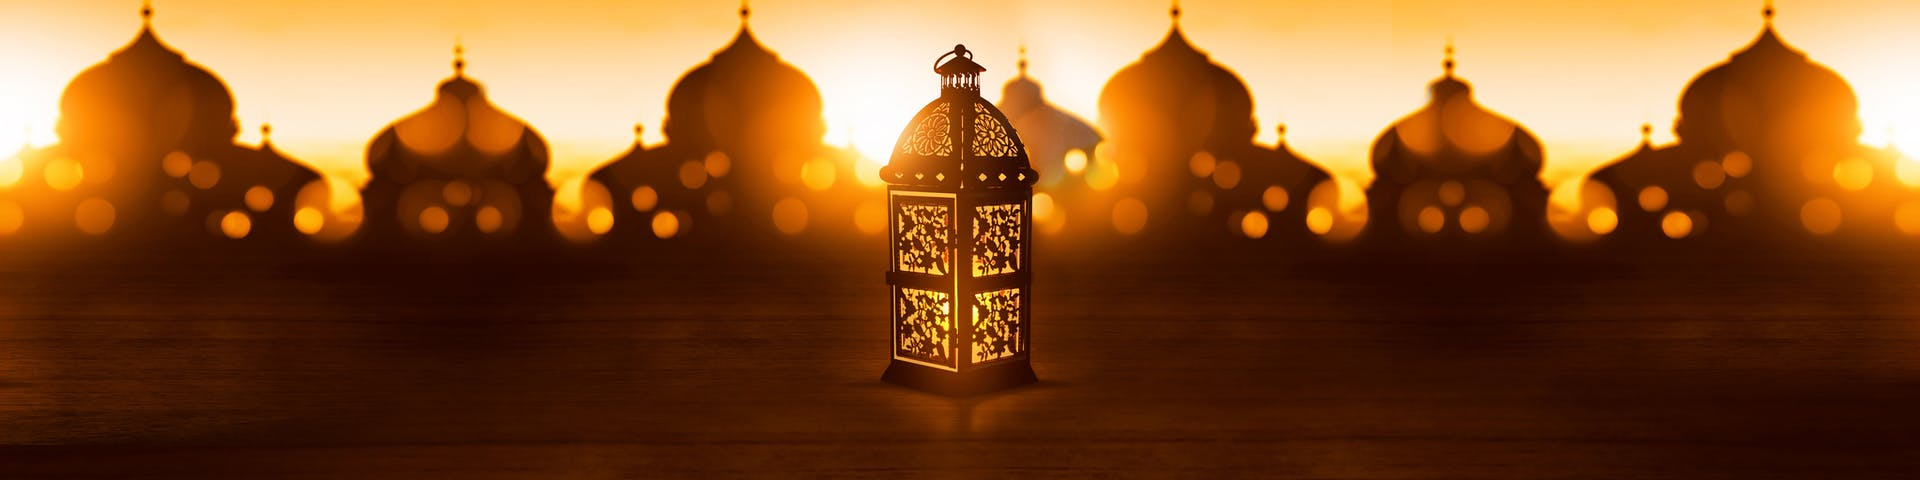 Eid al fitr lantern glowing at night